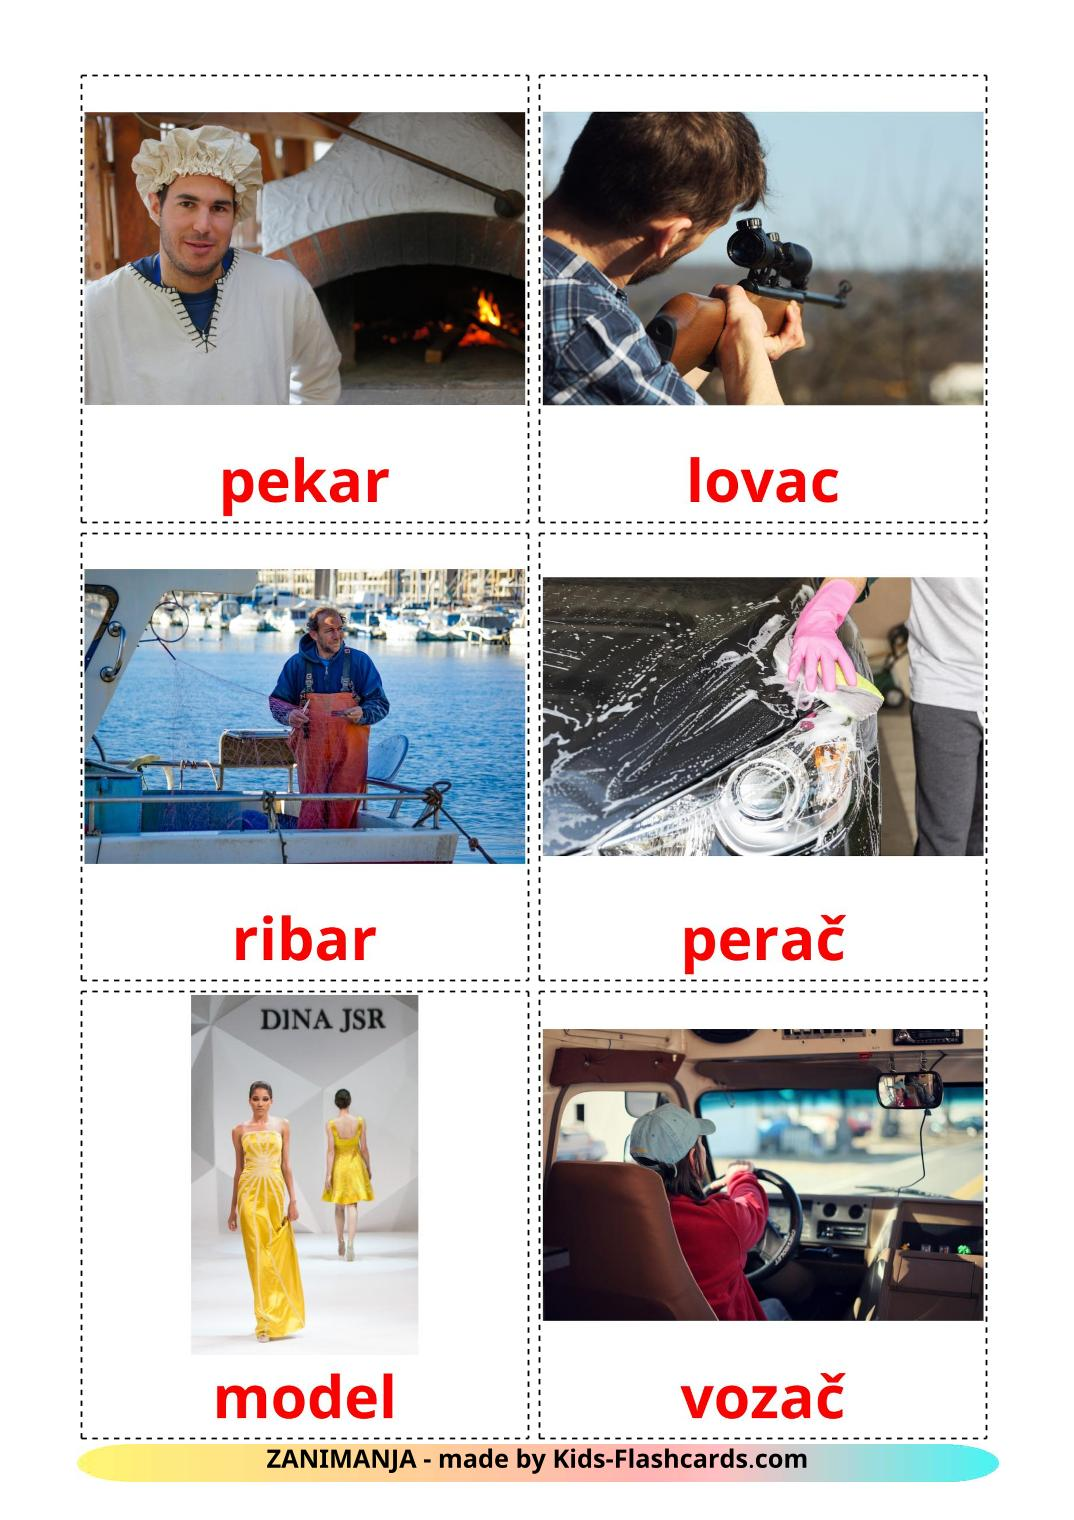 Jobs and Occupations - 51 Free Printable croatian Flashcards